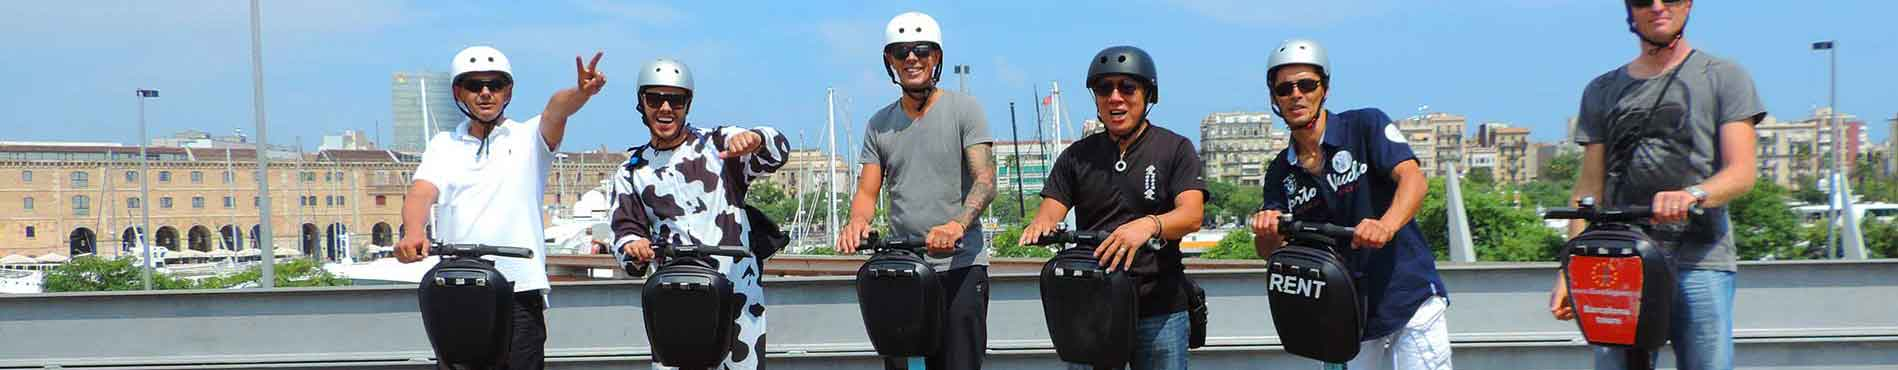 Segway Touring Barcelona with Euro Segway